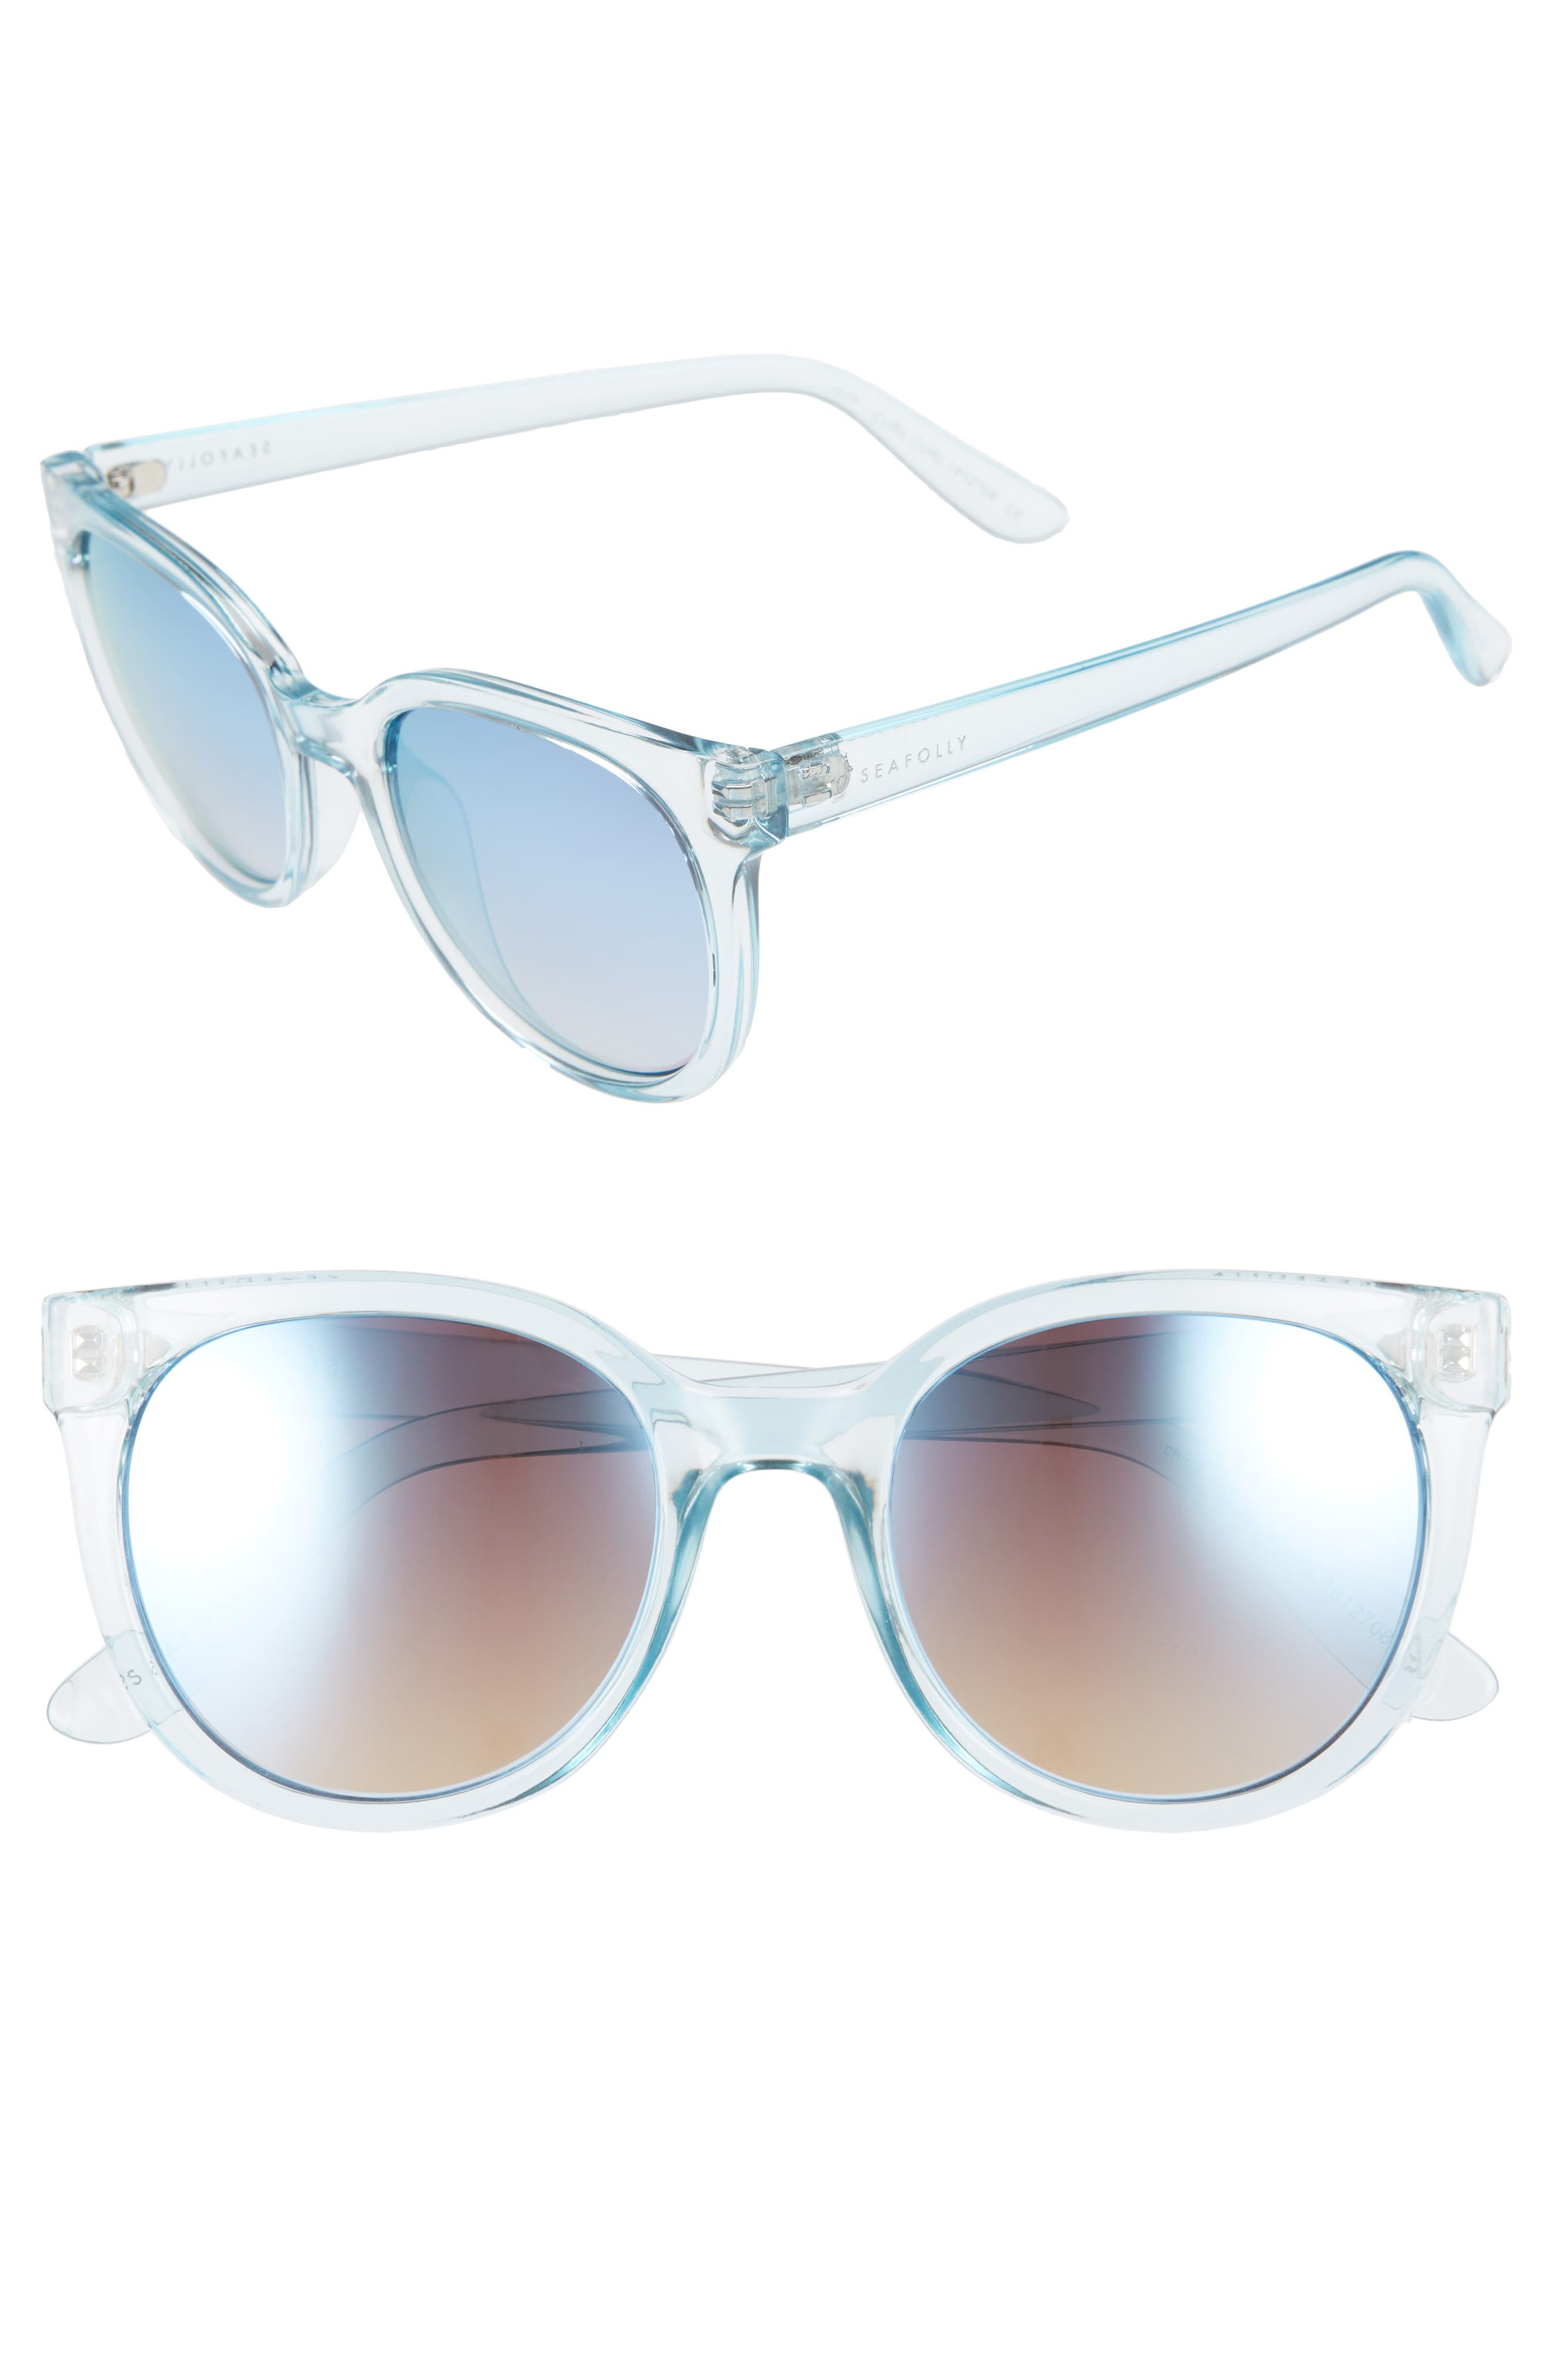 SEAFOLLY CURL CURL 53MM SUNGLASSES - CORNFLOWER/ BLUE